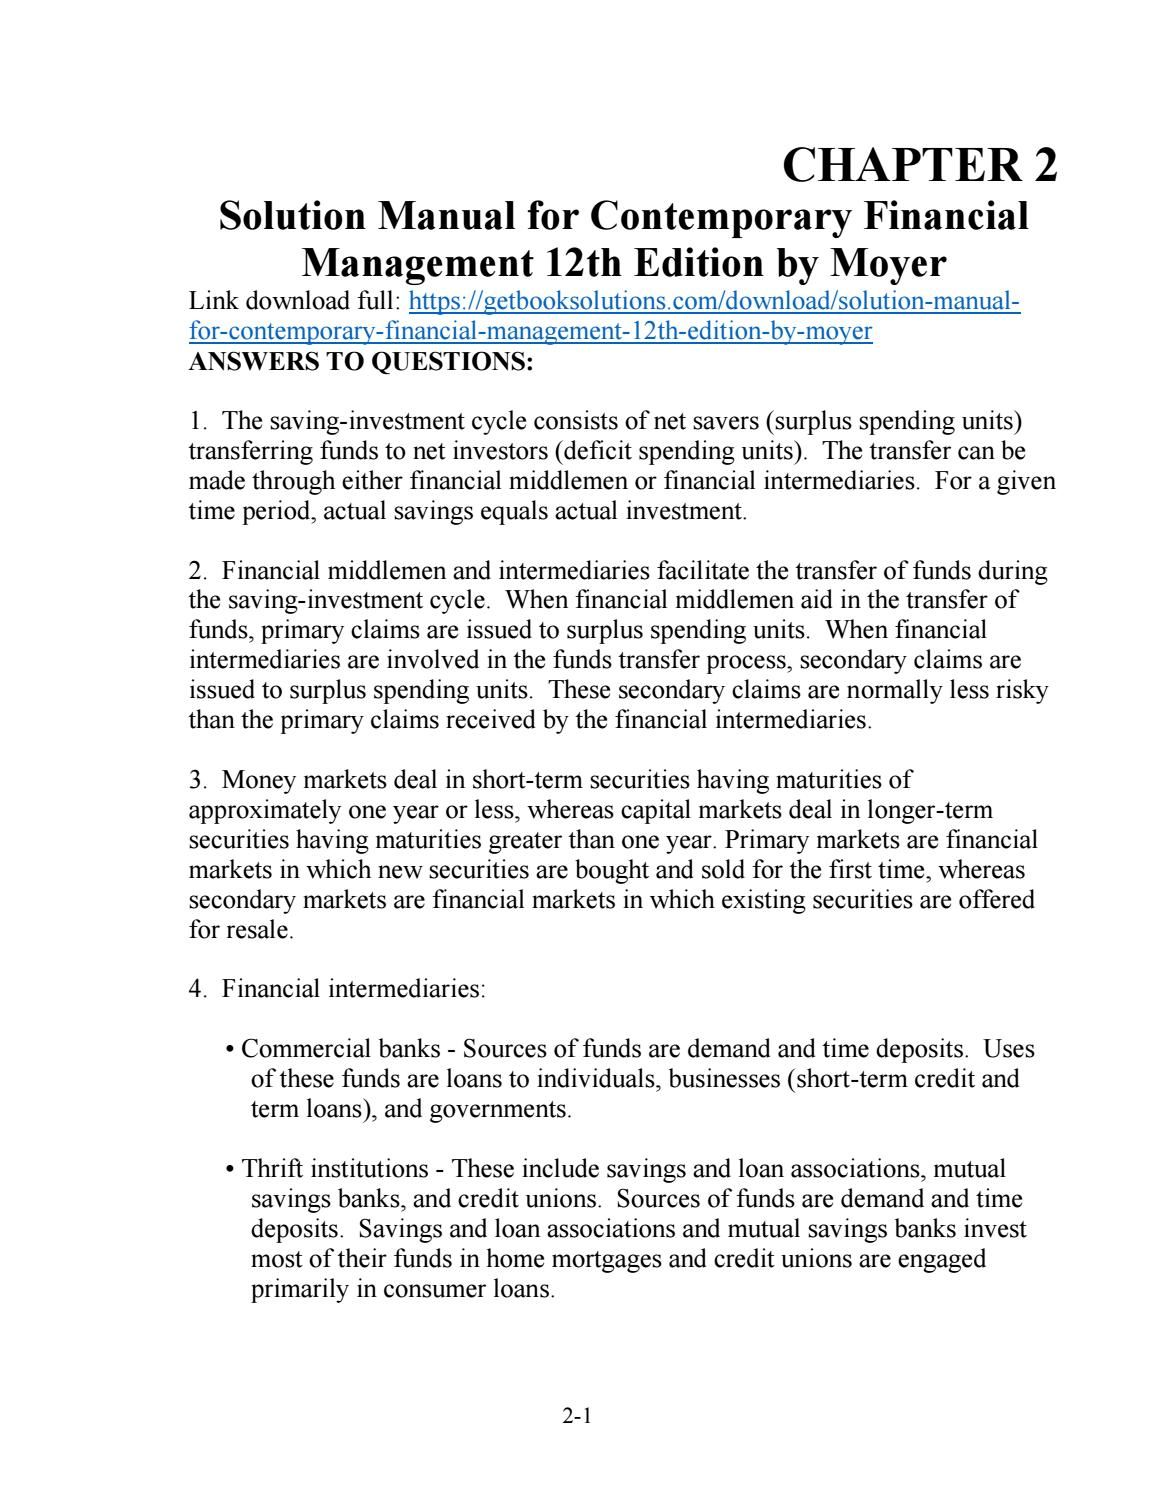 Solution manual for contemporary financial management 12th edition by moyer